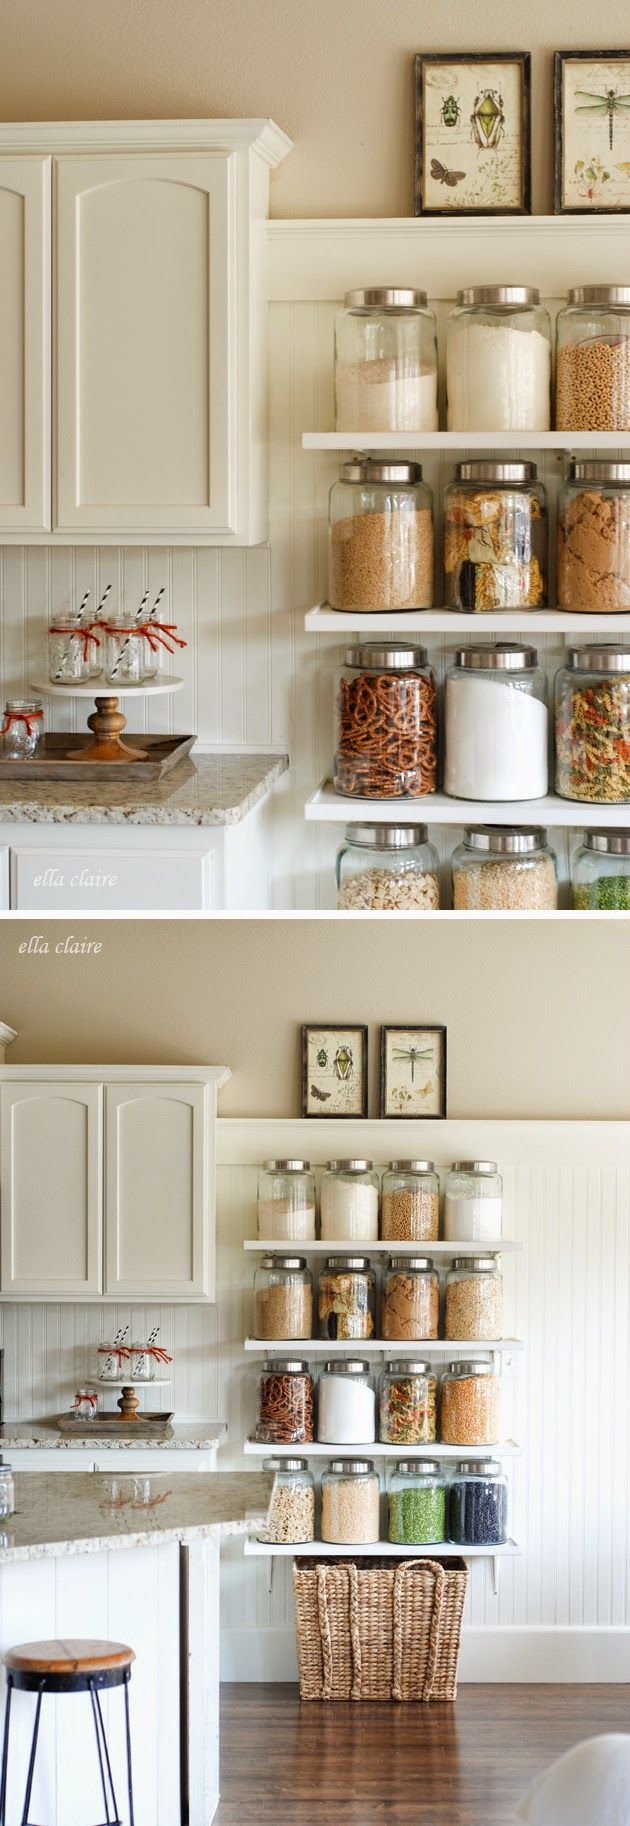 Diy country store kitchen shelves glass canisters shelving and pantry Kitchen design diy ideas